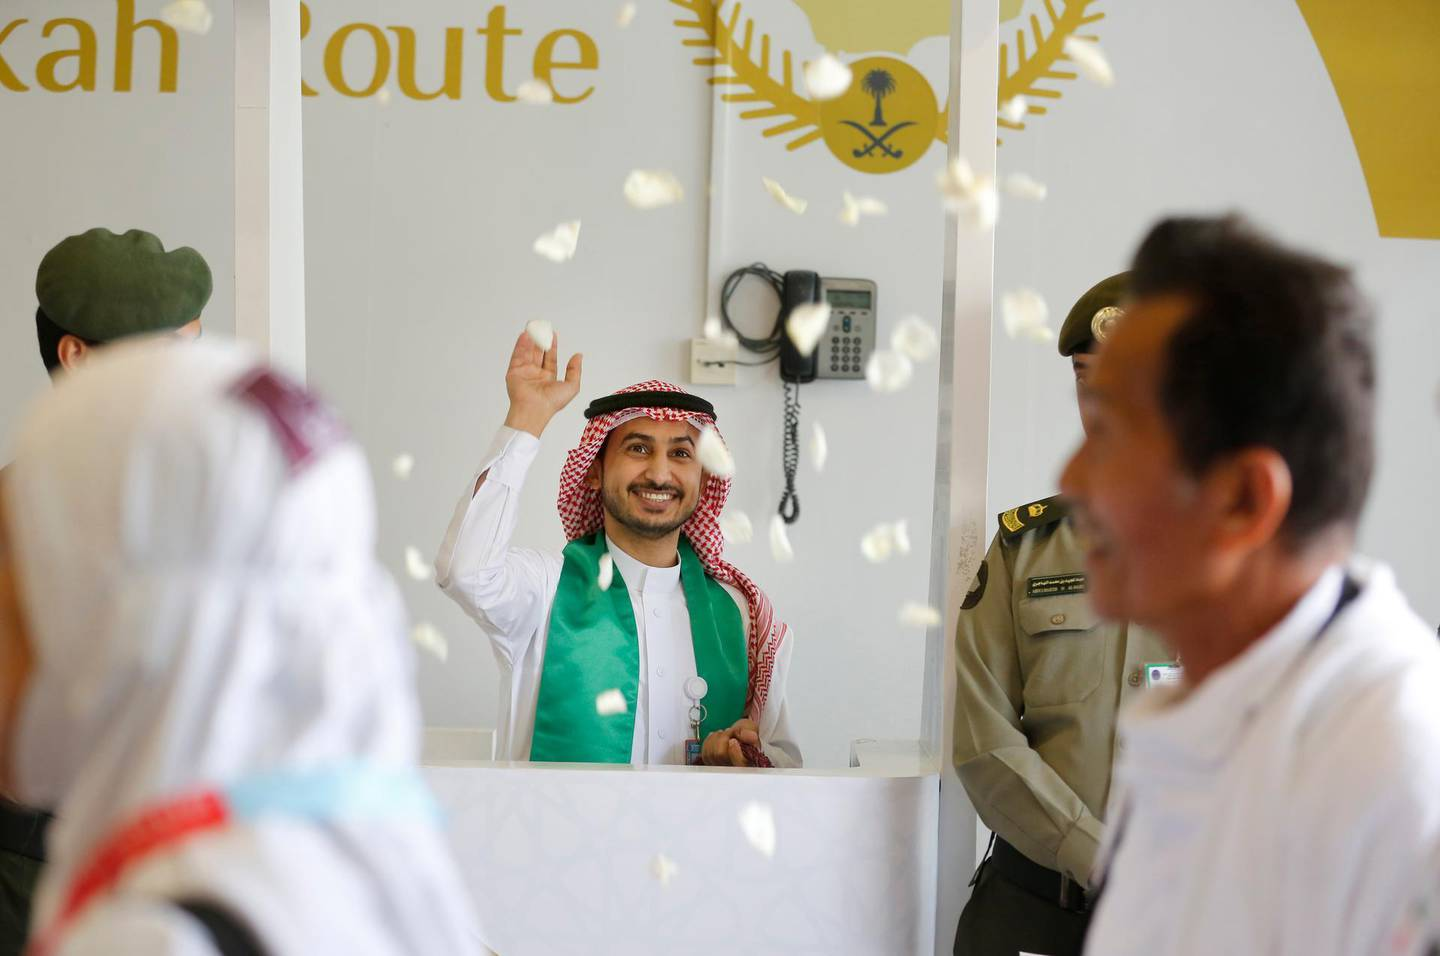 A Saudi airport worker throws flowers as he welcomes Malaysian pilgrims at the Hajj Terminal at Jiddah airport, Saudi Arabia, Saturday, Aug. 3, 2019.  The annual Islamic pilgrimage draws millions of visitors each year, making it the largest yearly gathering of people in the world.  (AP Photo/Amr Nabil)